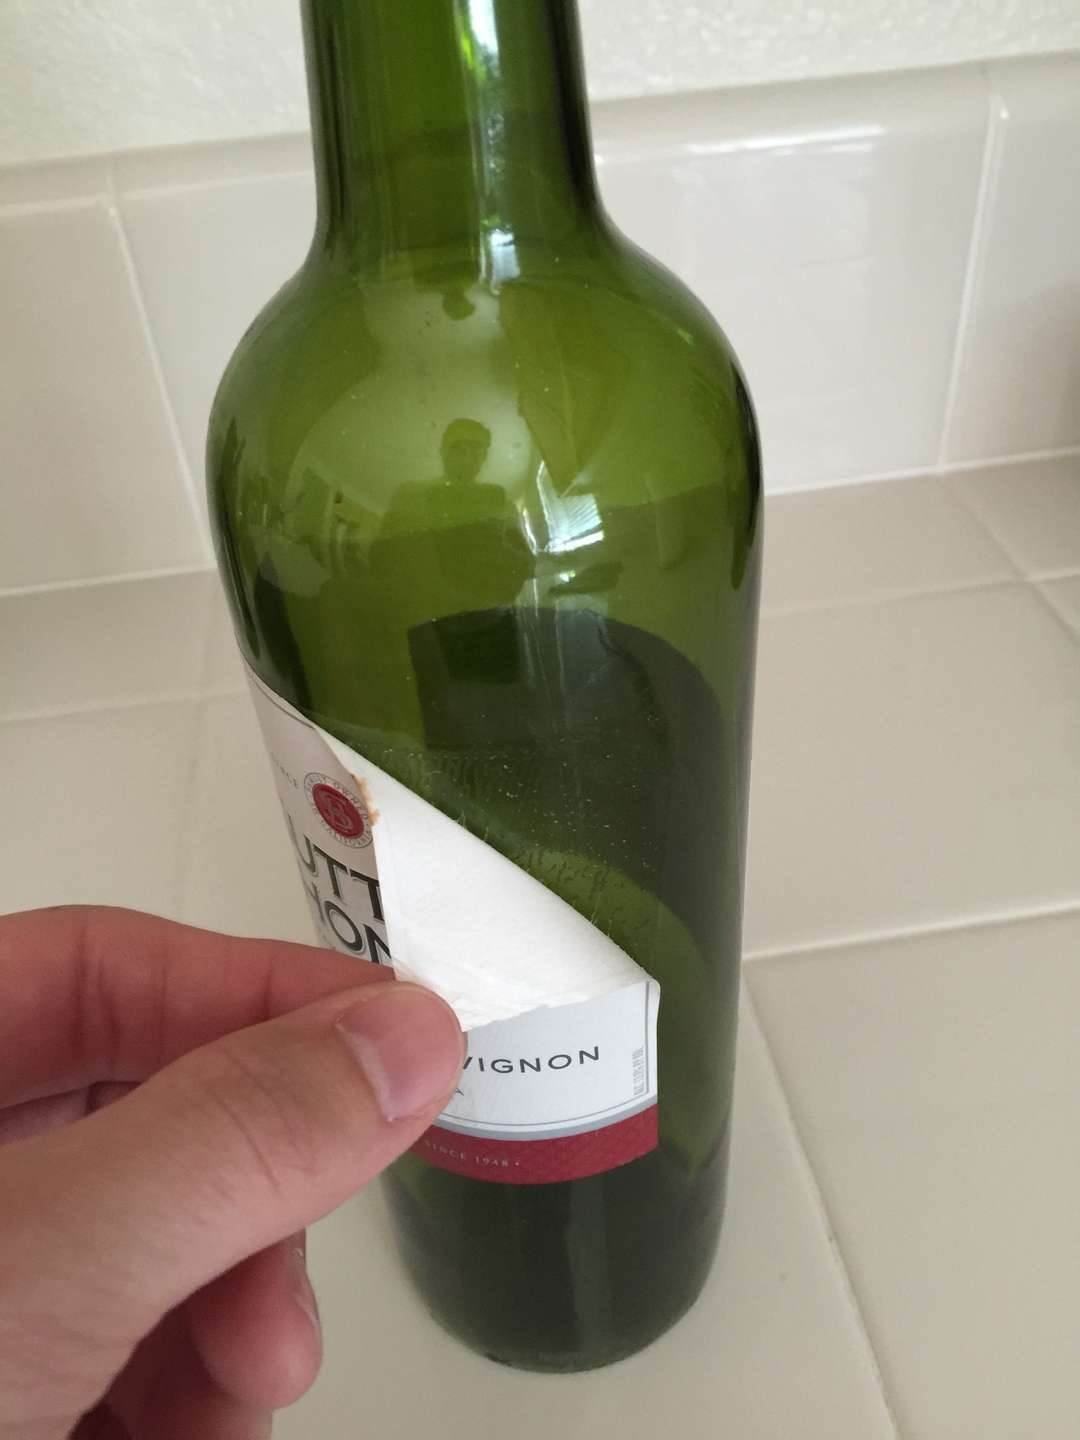 Use that corner to peel away the rest of the label